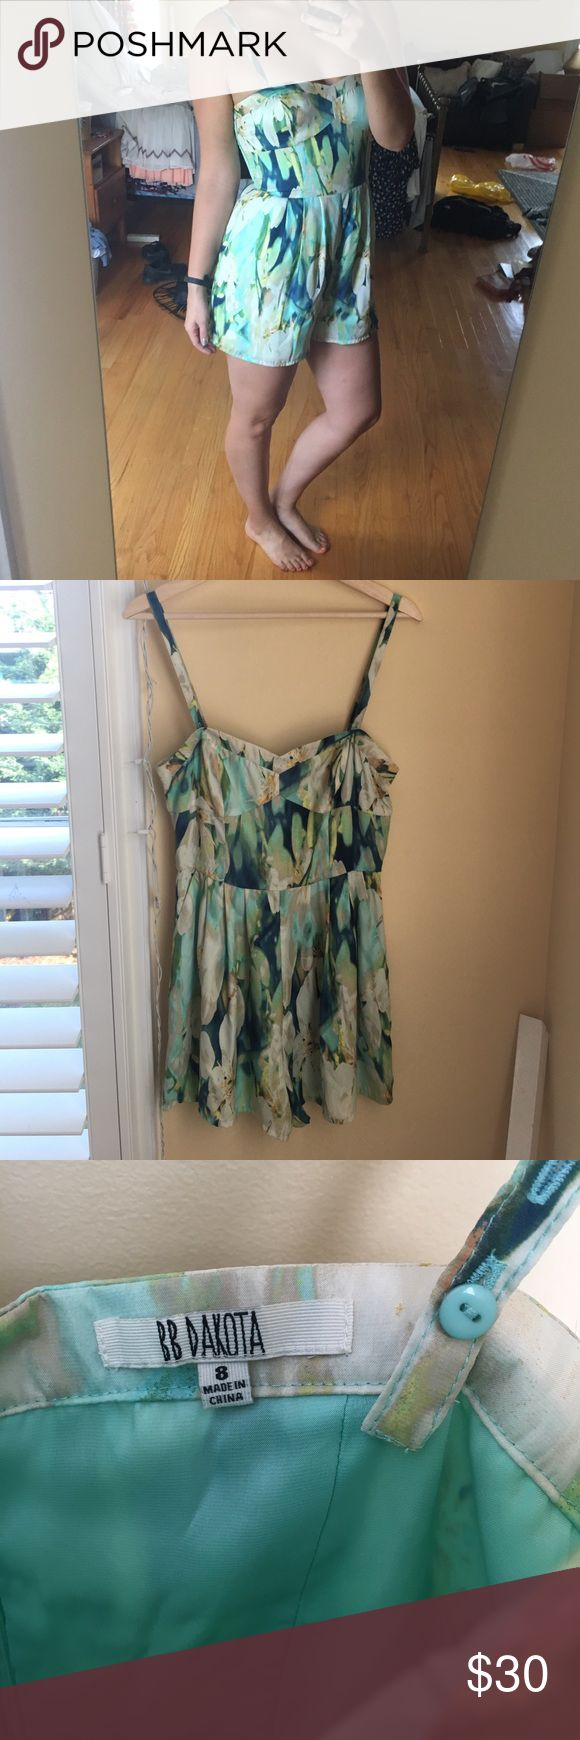 Silk Lily Romper Beautiful water lily print romper. Silk material, lined. Removable straps - can be worn strapless. New with tags. Size 8, from UO. Urban Outfitters Dresses